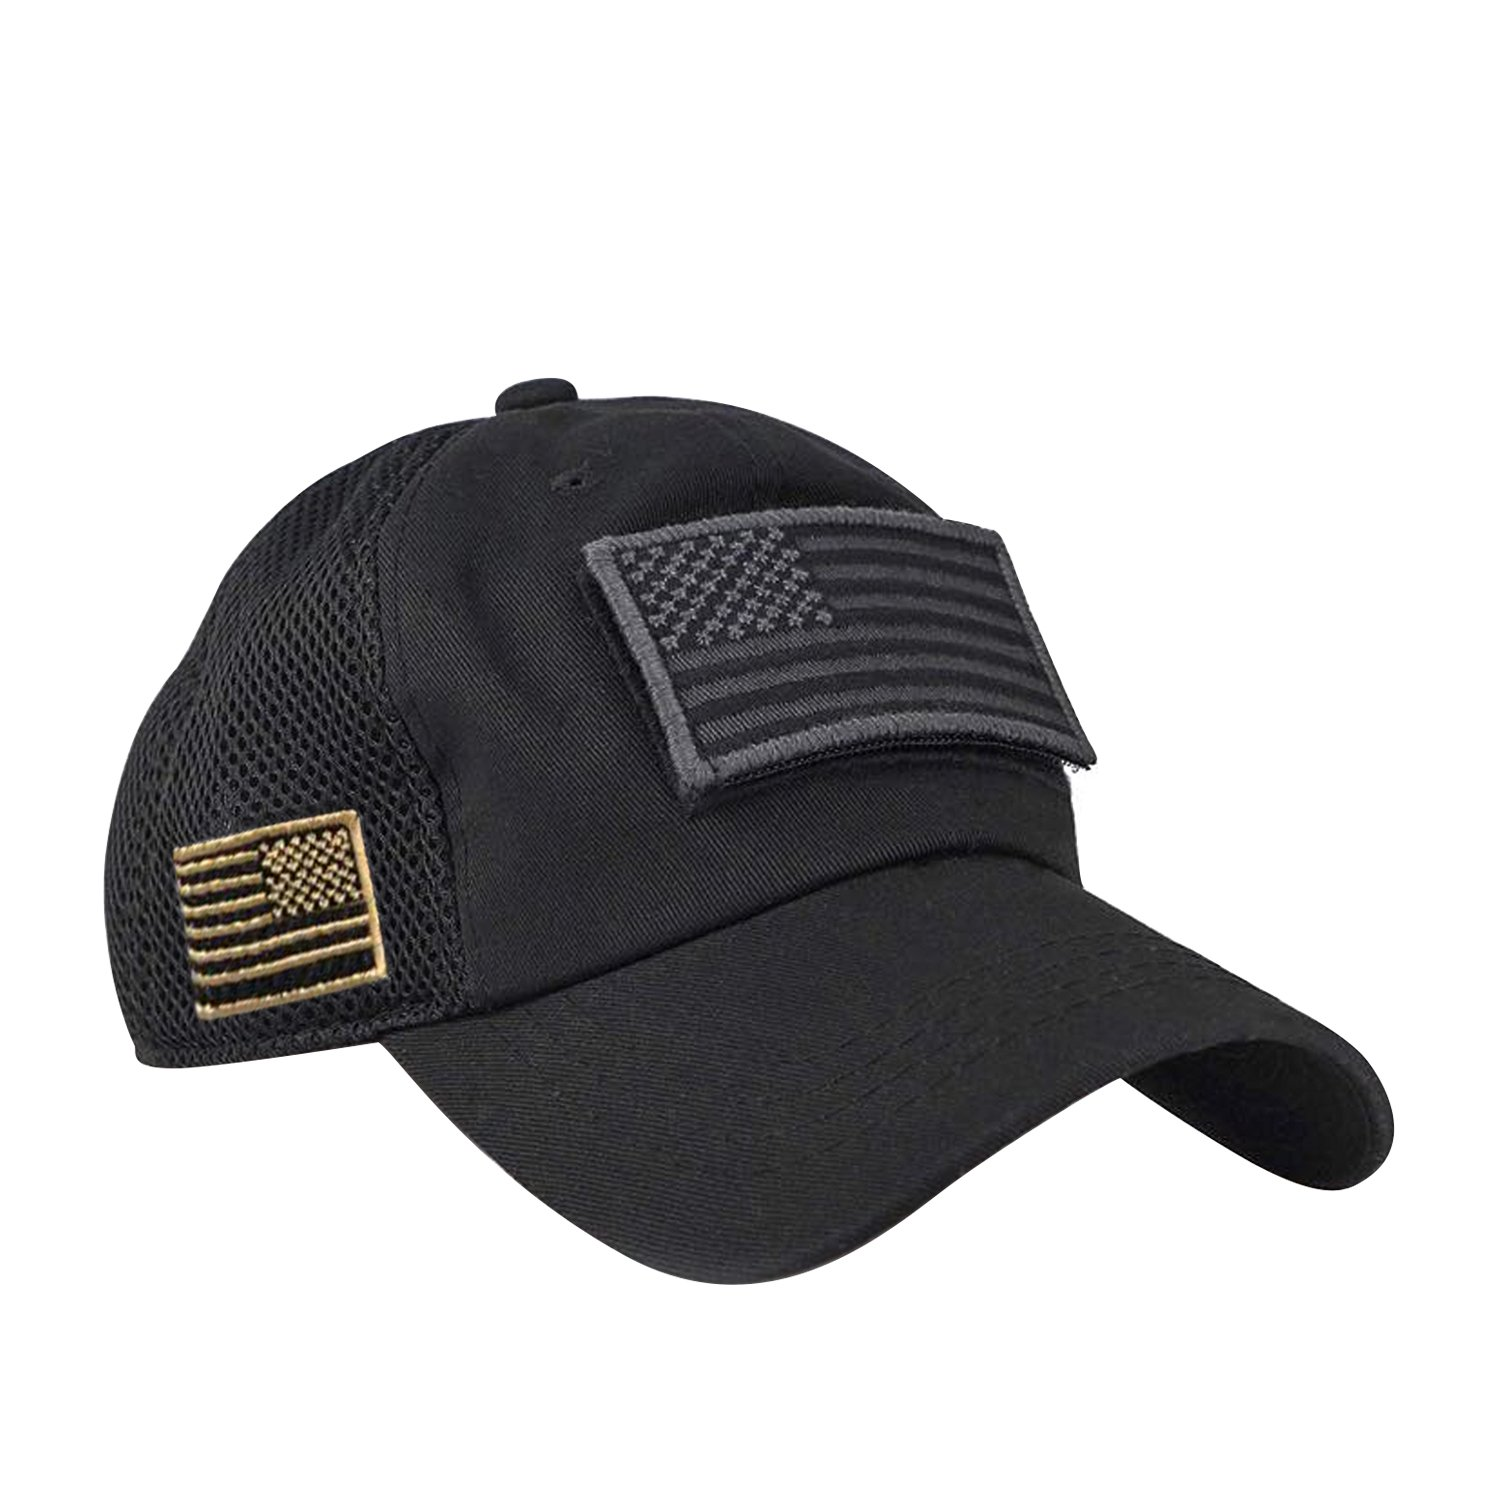 2cfe461aa Micro MeshTactical Operator Forces USA Flag Patch Baseball Cap (Black)